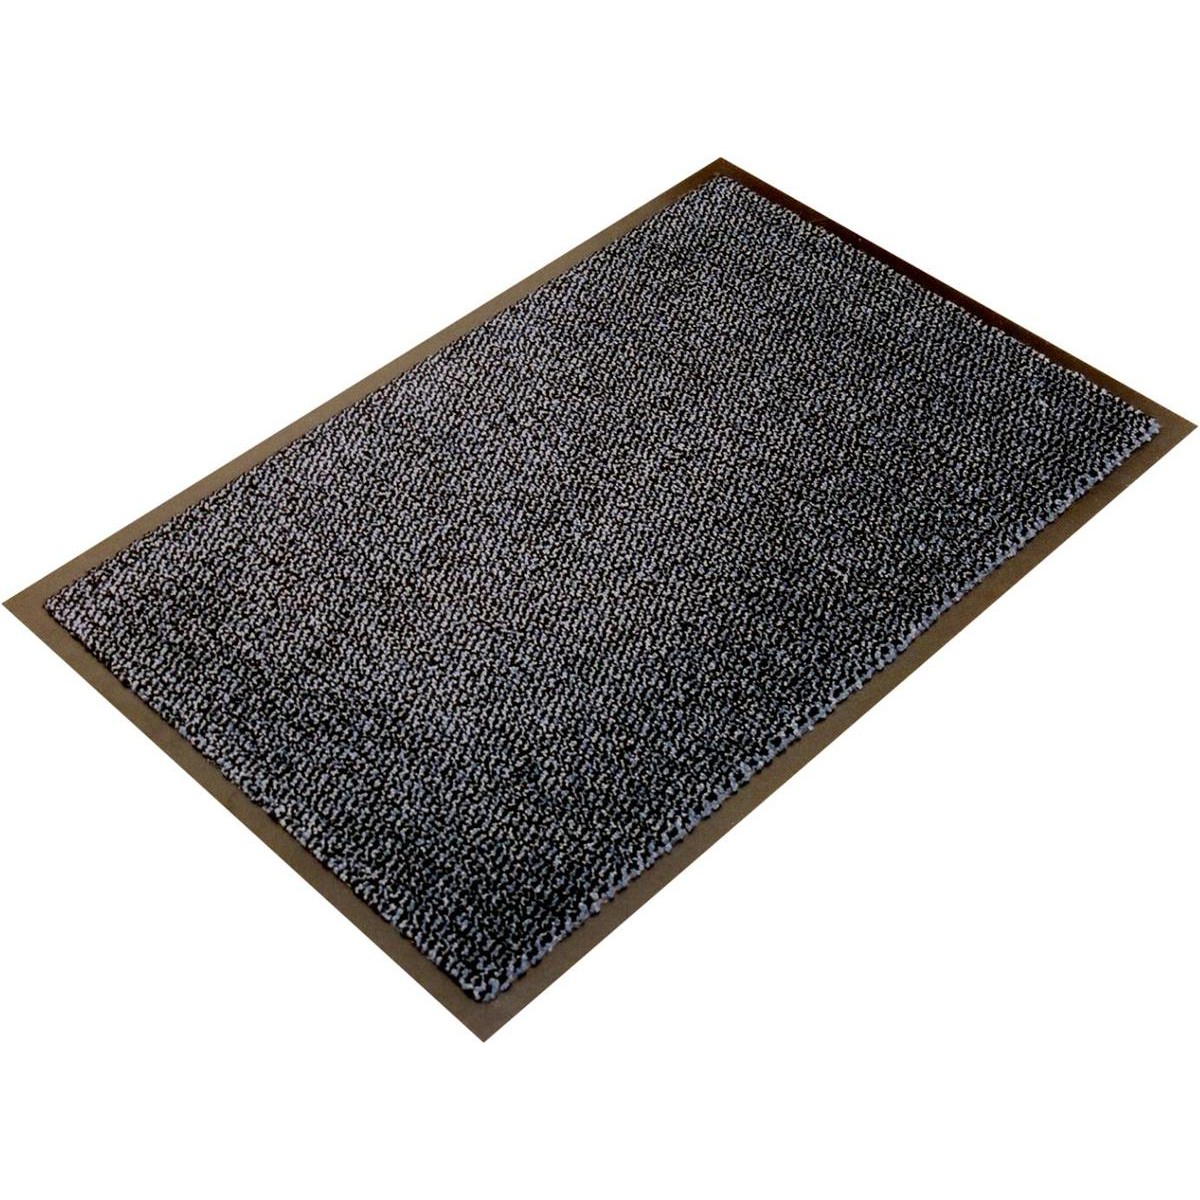 Doortex Ultimat Entrance Mat Indoor Use Nylon Monofilaments 900x3000mm Grey Ref FC490300ULTGR